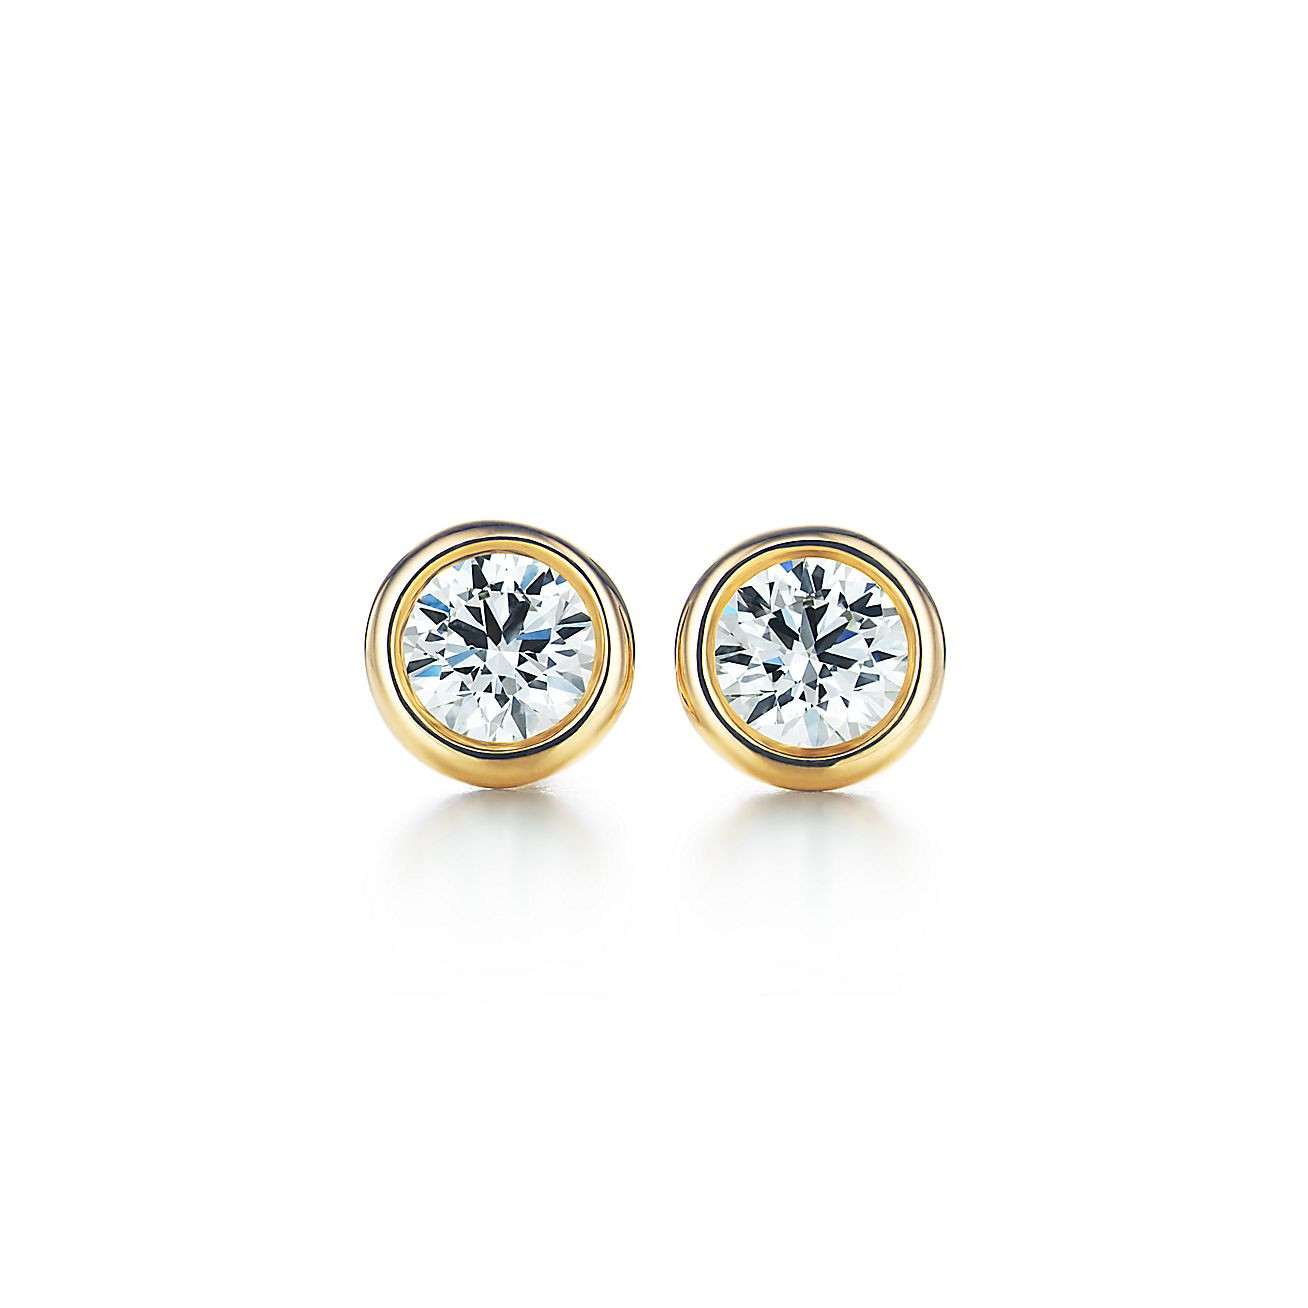 Elsa Peretti Diamonds By The Yard Earrings In 18k Gold Tiffany Co